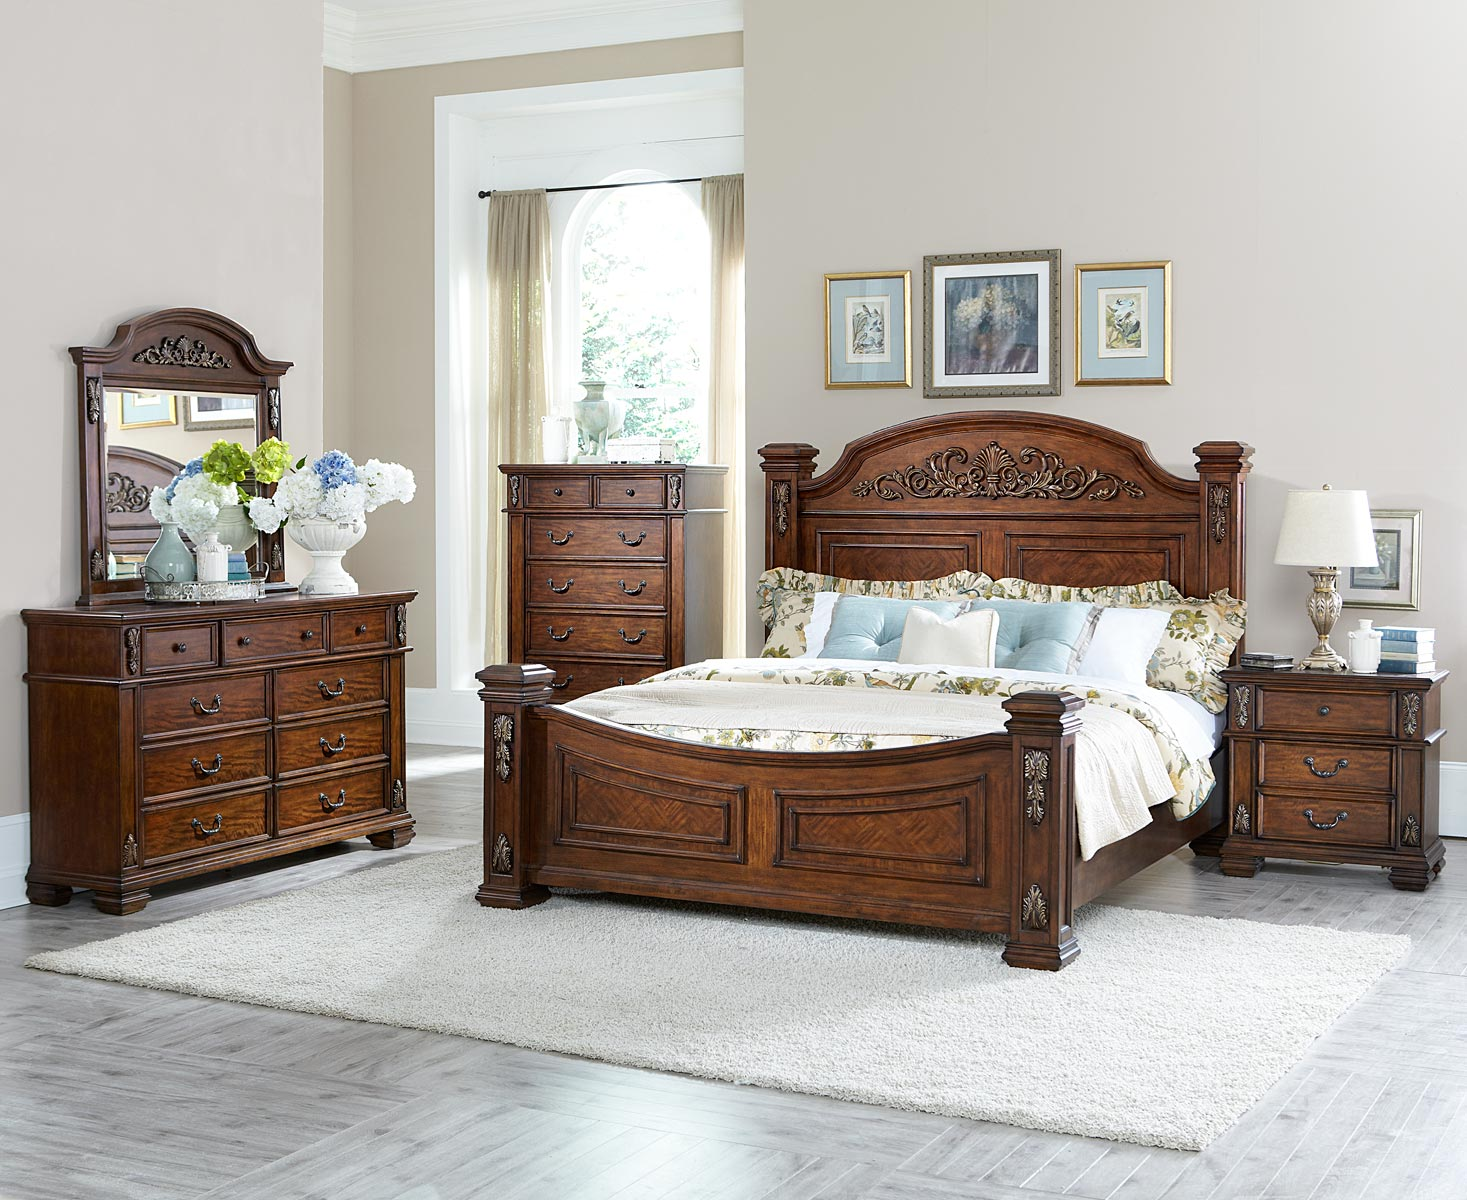 Homelegance Donata Falls Bedroom Set - Warm Brown